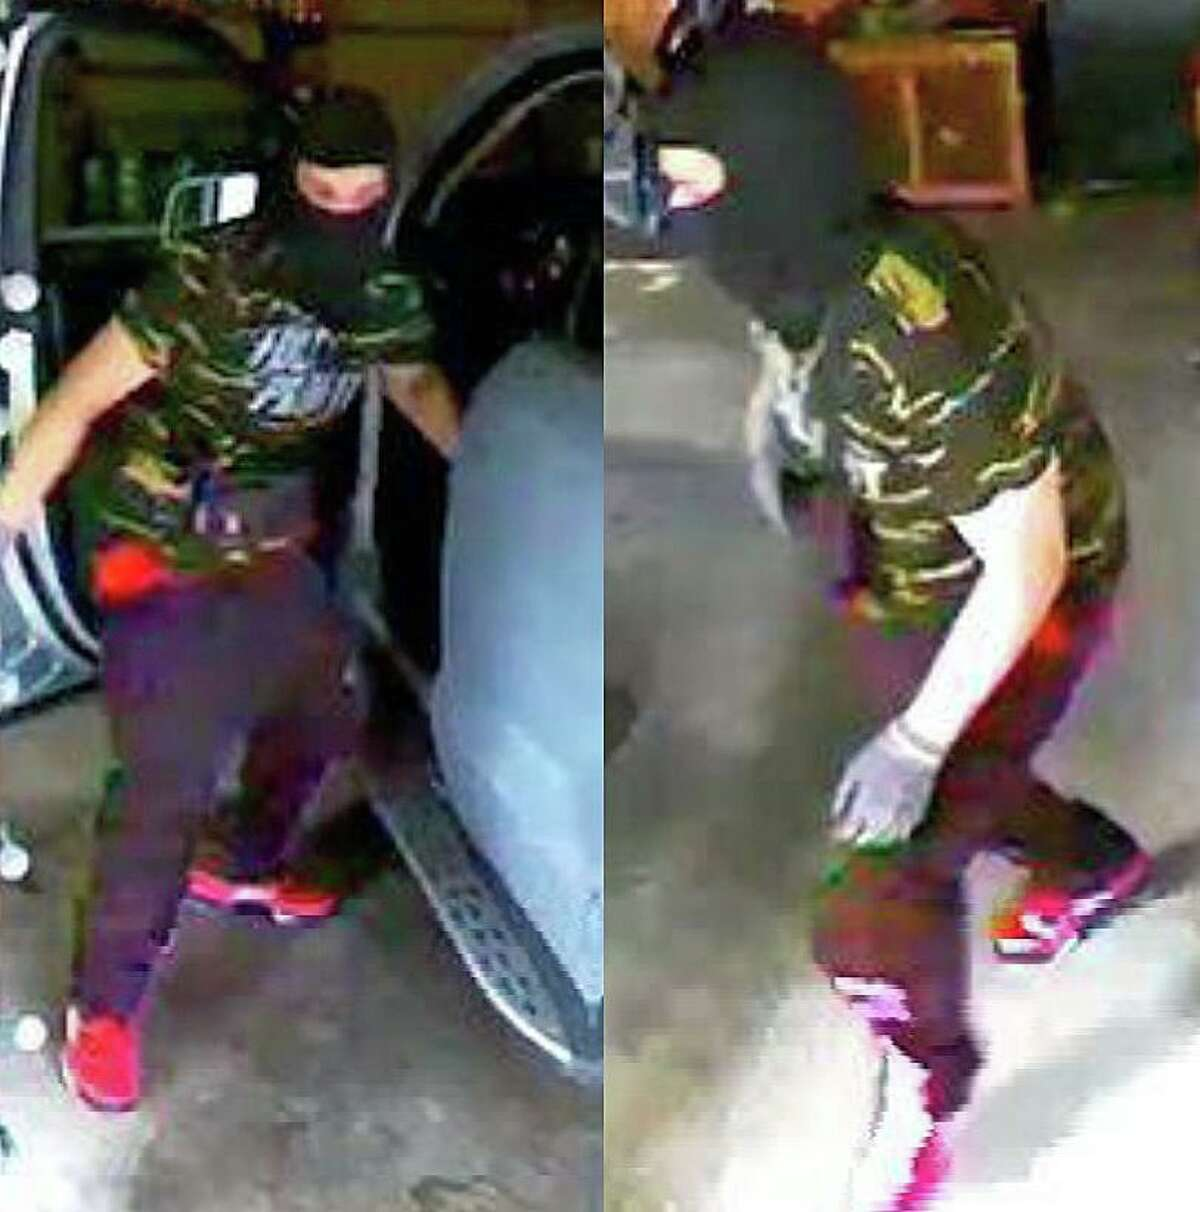 Police say this individual was involved in a vehicle theft from a Manchester, Conn., home on July 10, 2021.